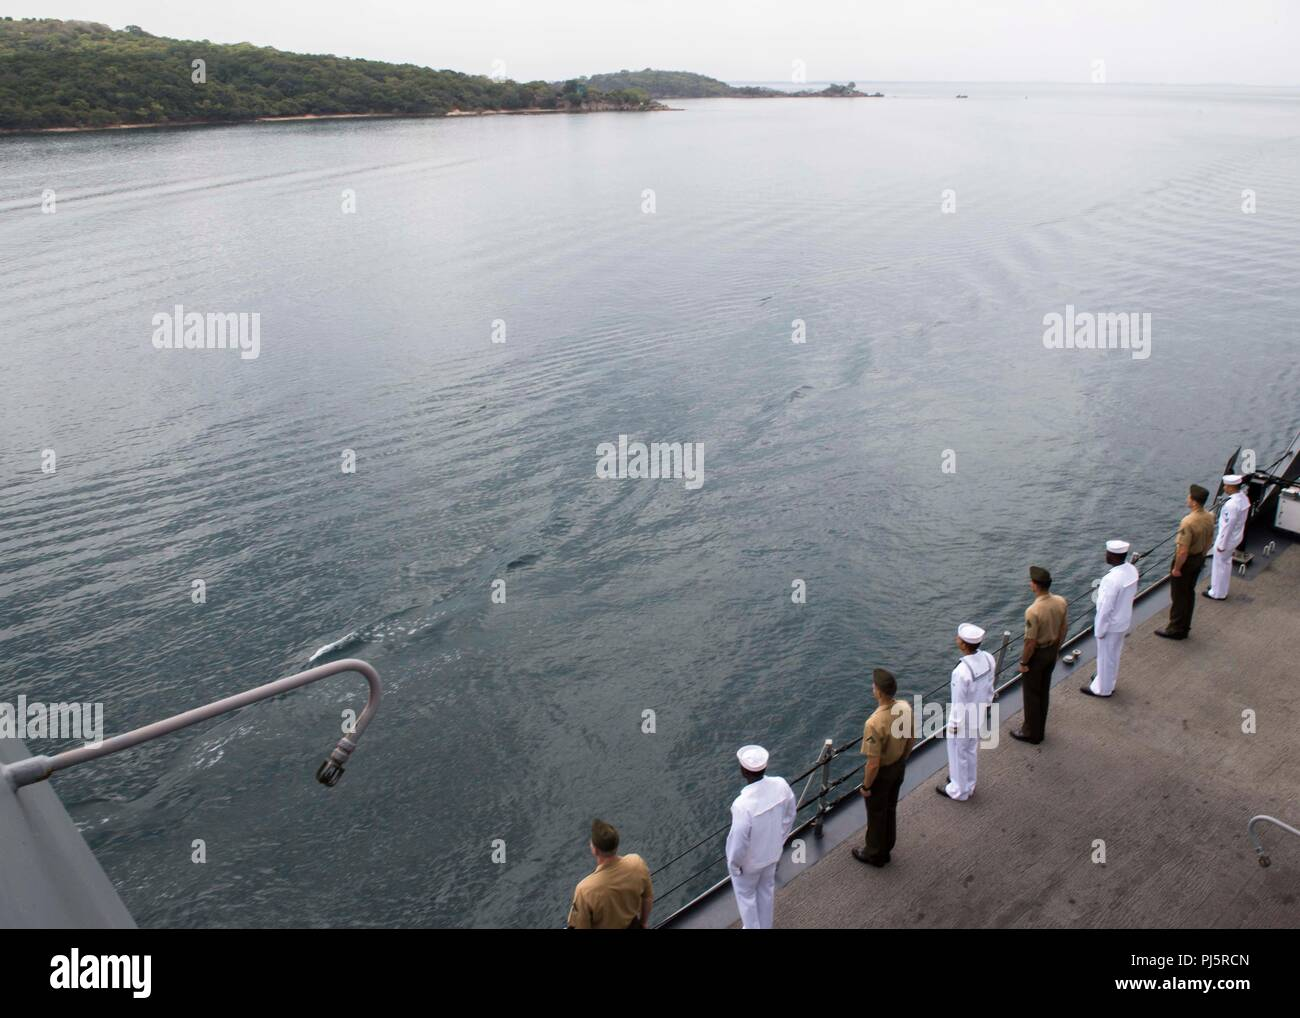 180824-N-PH222-0229 TRINCOMALEE, SRI LANKA (August 24, 2018) Sailors assigned to San Antonio-class amphibious transport dock USS Anchorage (LPD 23) and Marines assigned to 13th Marine Expeditionary Unit (MEU) man the rails before a scheduled port visit in Trincomalee, Sri Lanka during a regularly scheduled deployment of the Essex Amphibious Ready Group (ARG) and 13th MEU. Anchorage and the embarked Marines of the 13th MEU are conducting a theater security cooperation exercise with the Sri Lankan Navy and the Navy Marines. Part of a growing U.S.-Sri Lanka naval partnership, the exercise is also - Stock Image